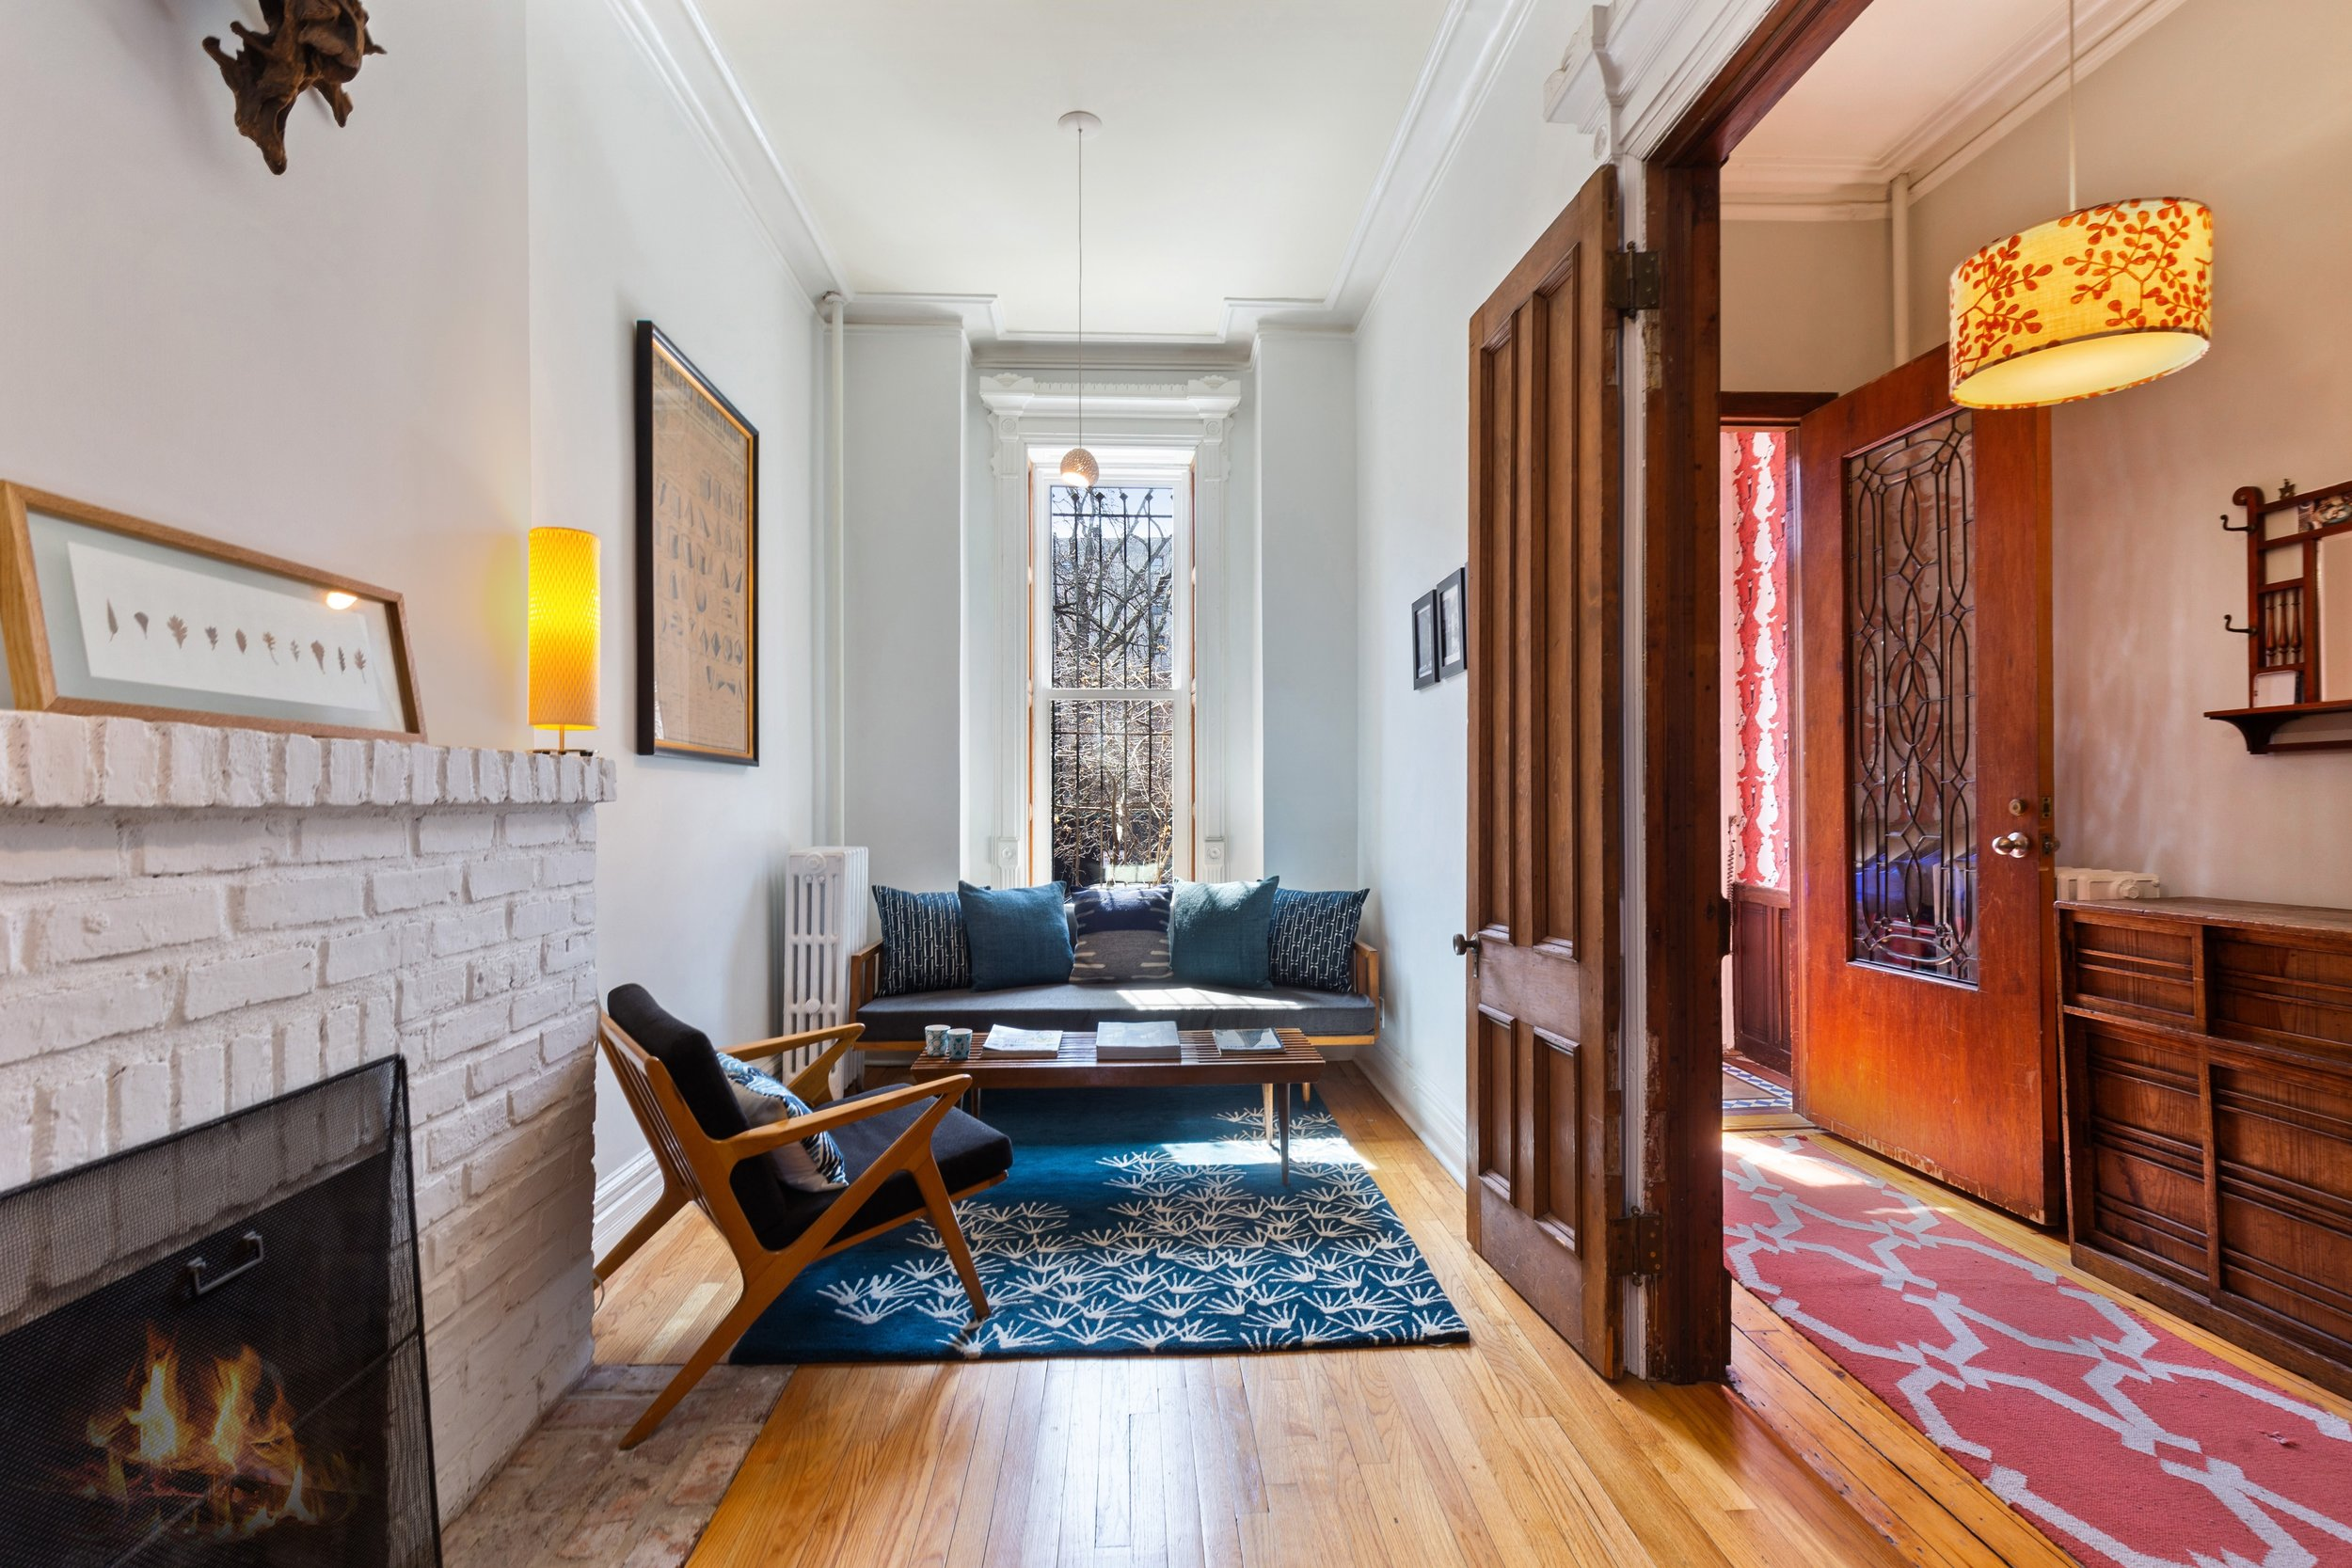 02_151WilloughbyAve_84_Entryway_HiRes.jpg